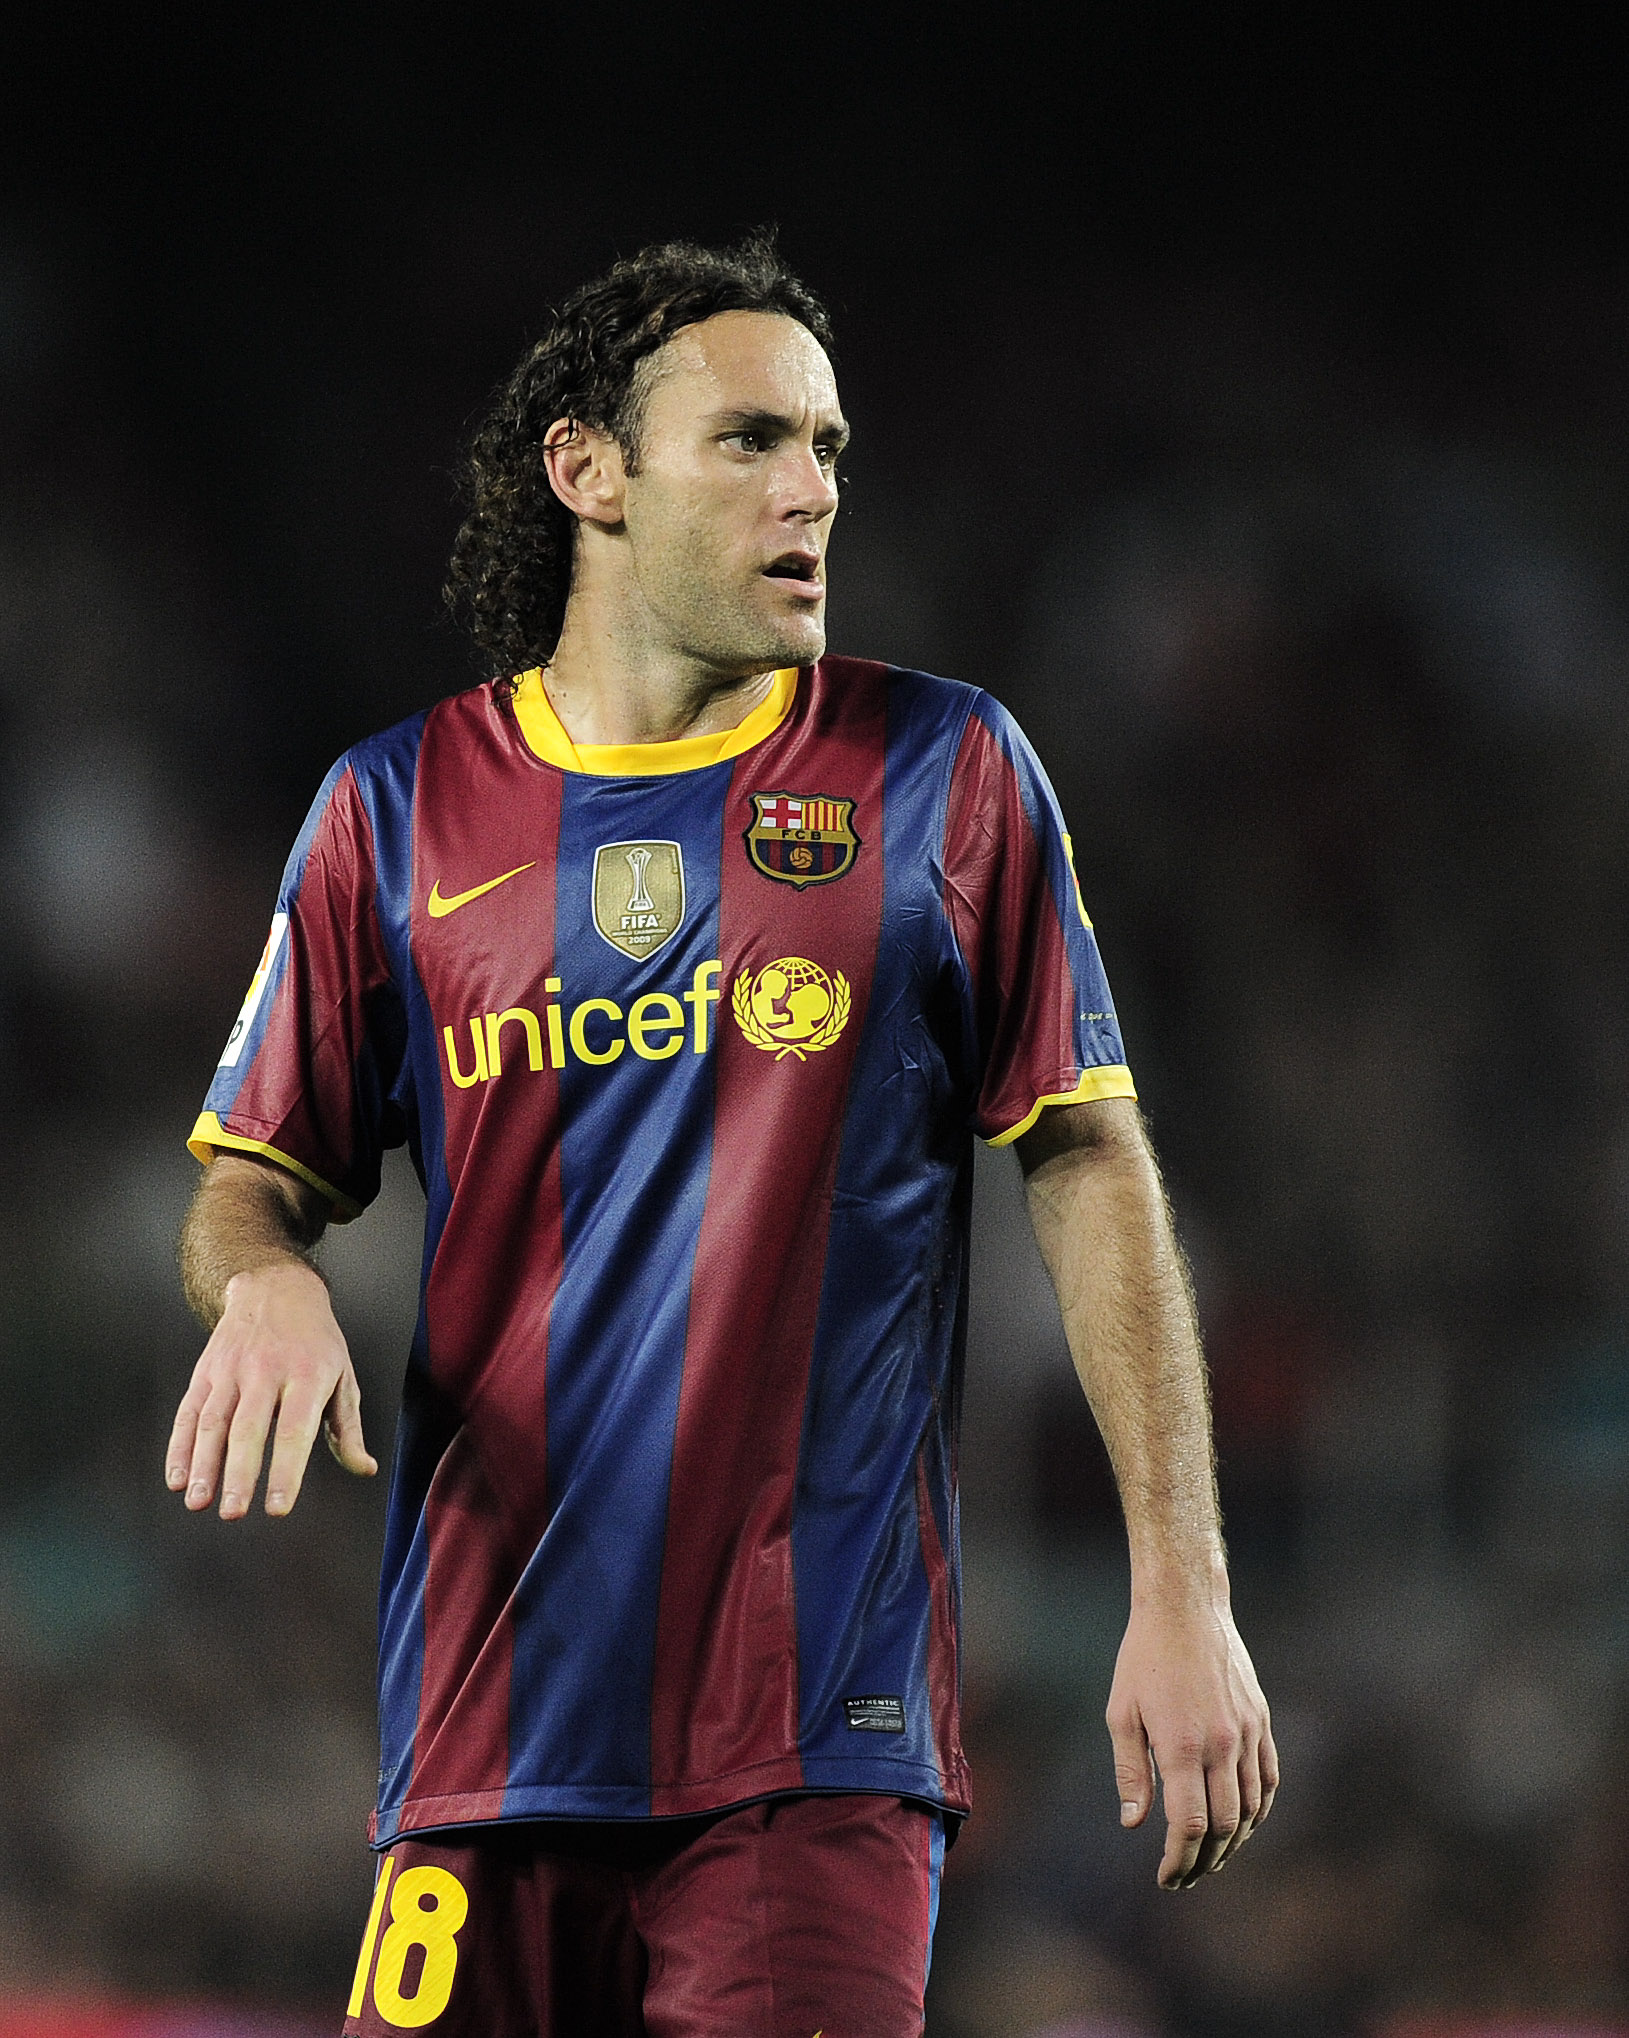 BARCELONA, SPAIN - OCTOBER 03:  Gabriel Milito of Barcelona looks on during the La Liga match between Barcelona and Mallorca at the Camp Nou stadium on October 3, 2010 in Barcelona, Spain. The Match ended in a 1-1 draw. (Photo by David Ramos/Getty Images)